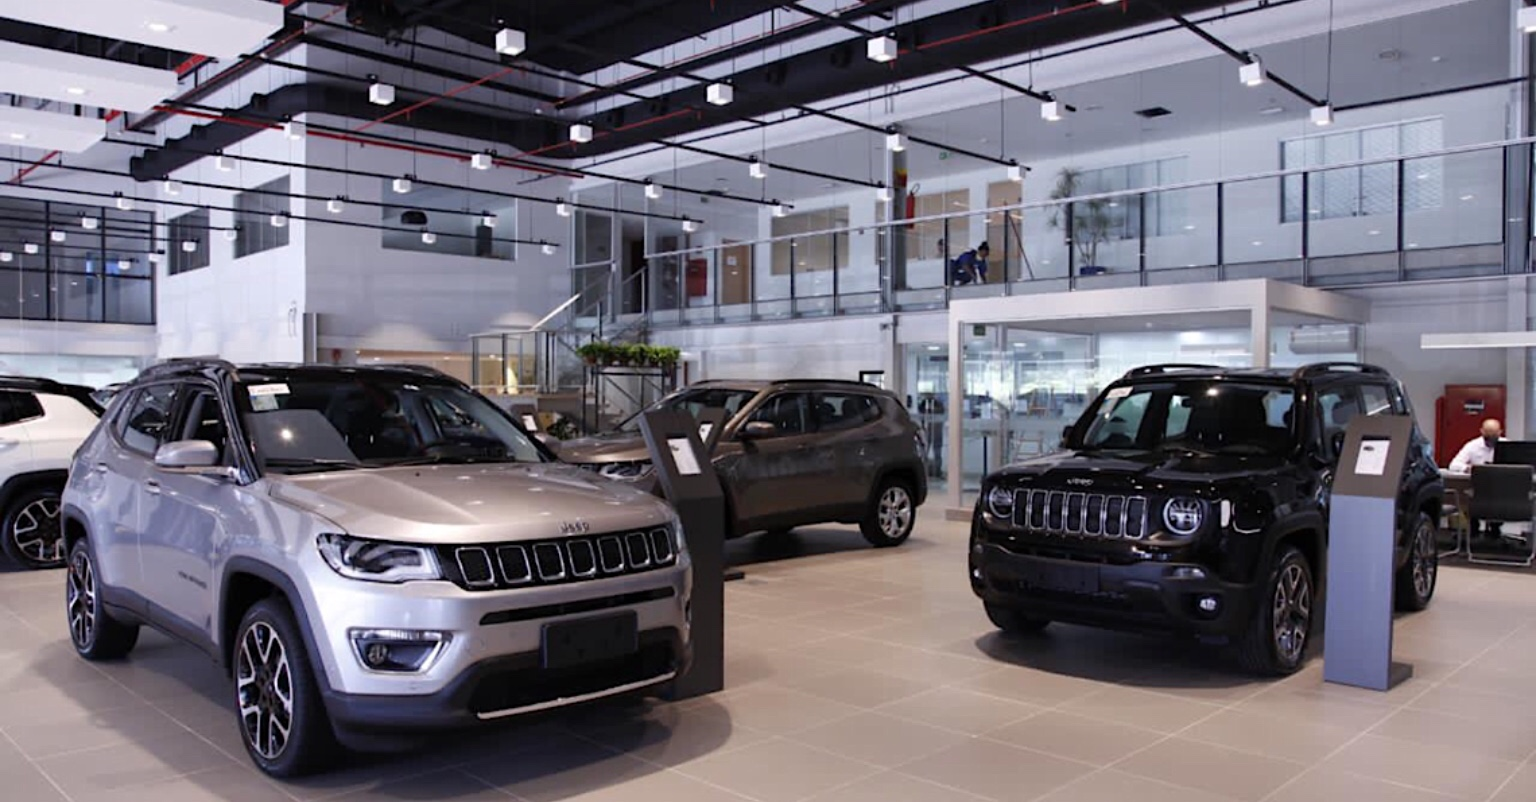 Bali Jeep abre as portas no SAAN